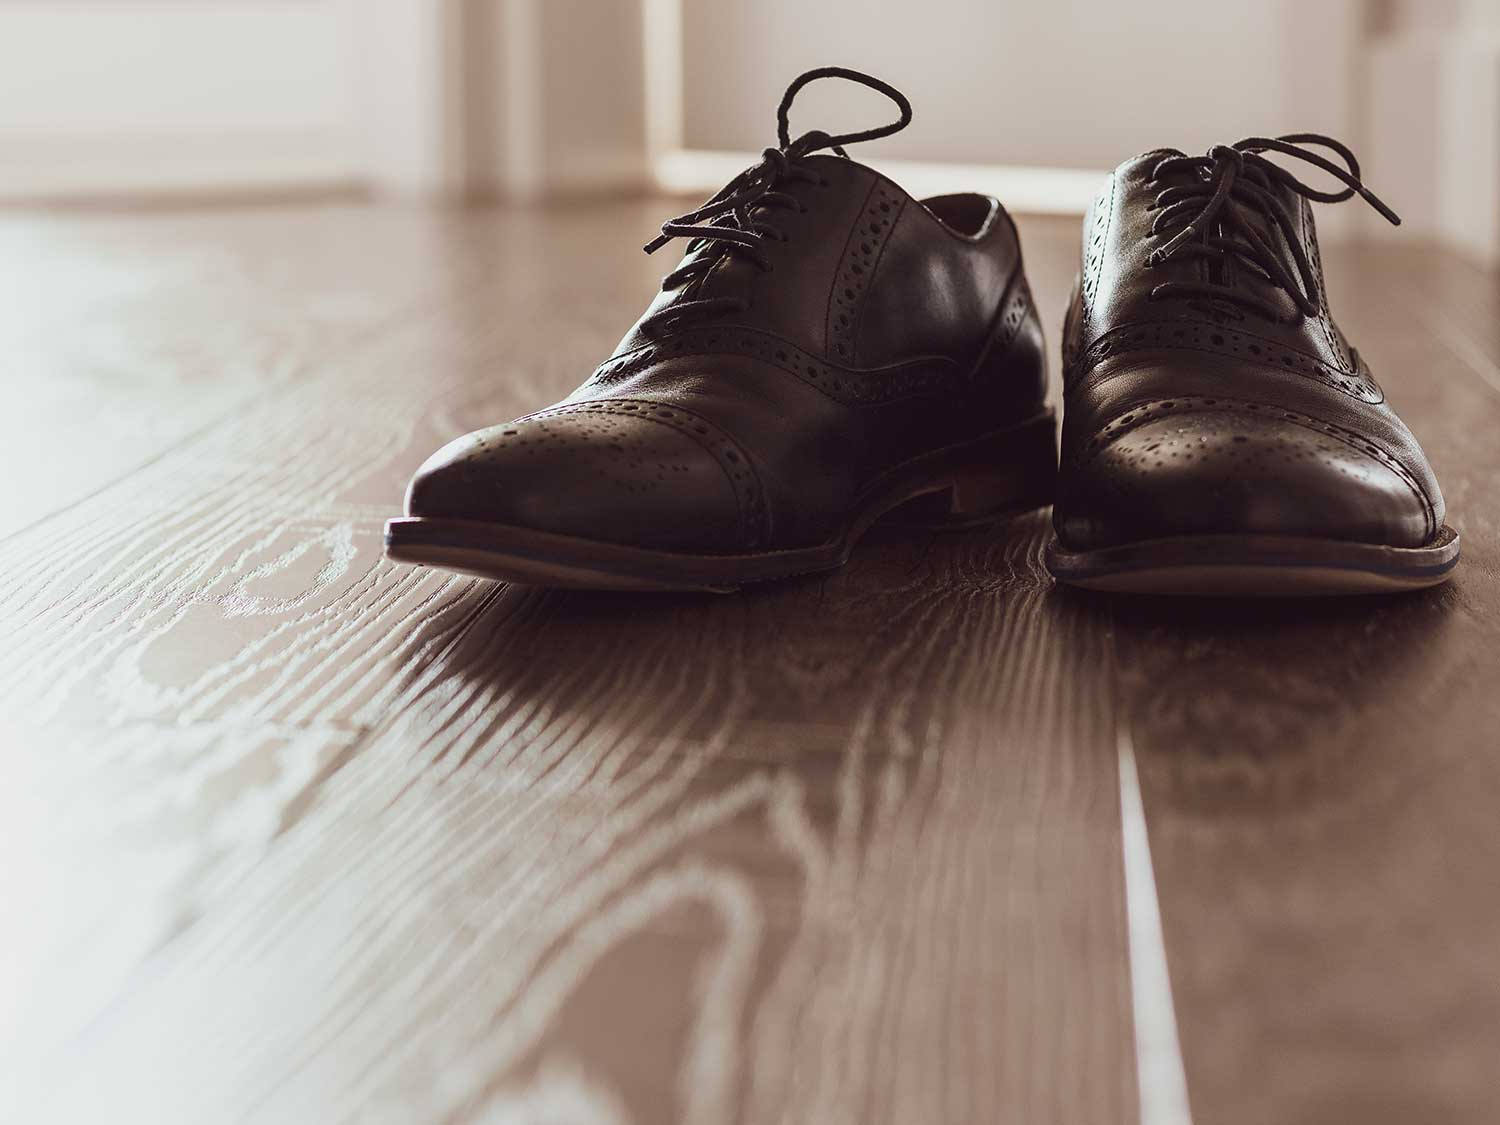 Shined shoes on wooden floor.